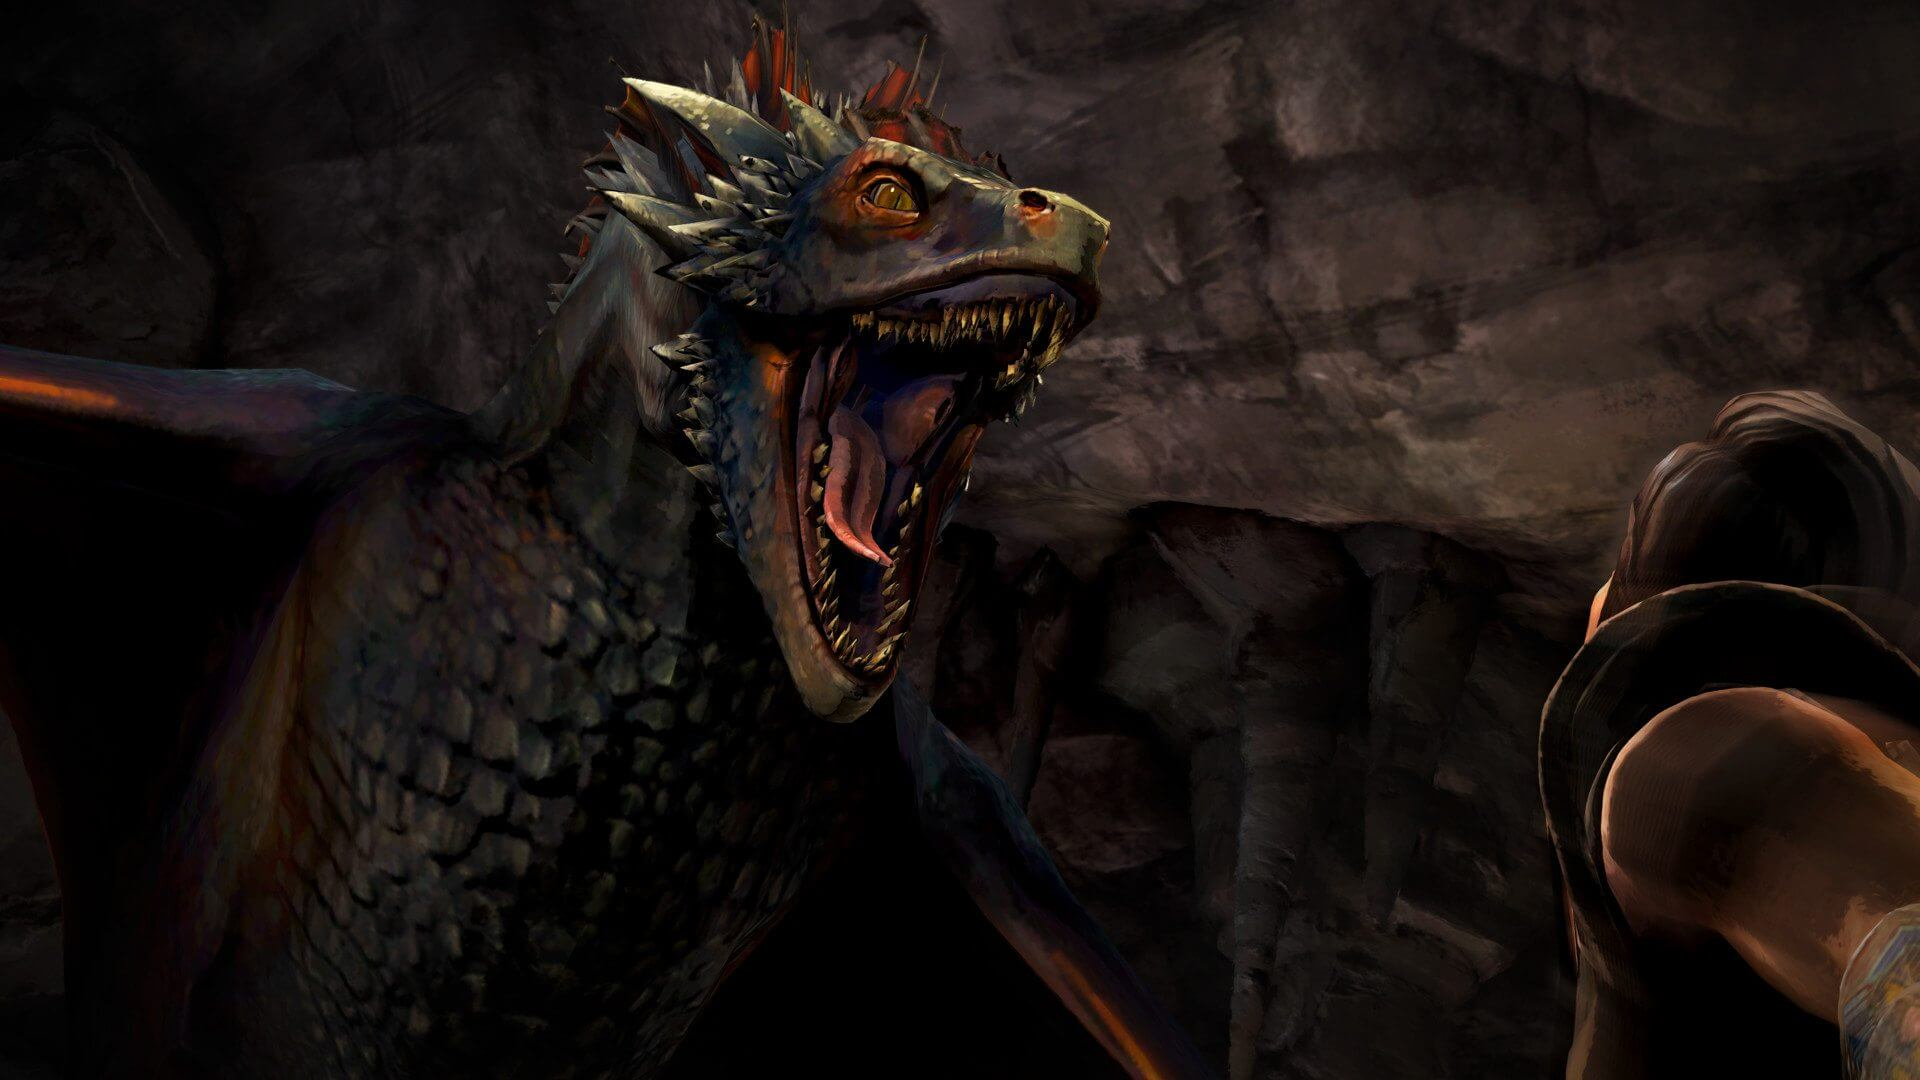 Game of Thrones Episode 3 Drogon - Nova animação de Game of Thrones é revelada: Conquest & Rebellion